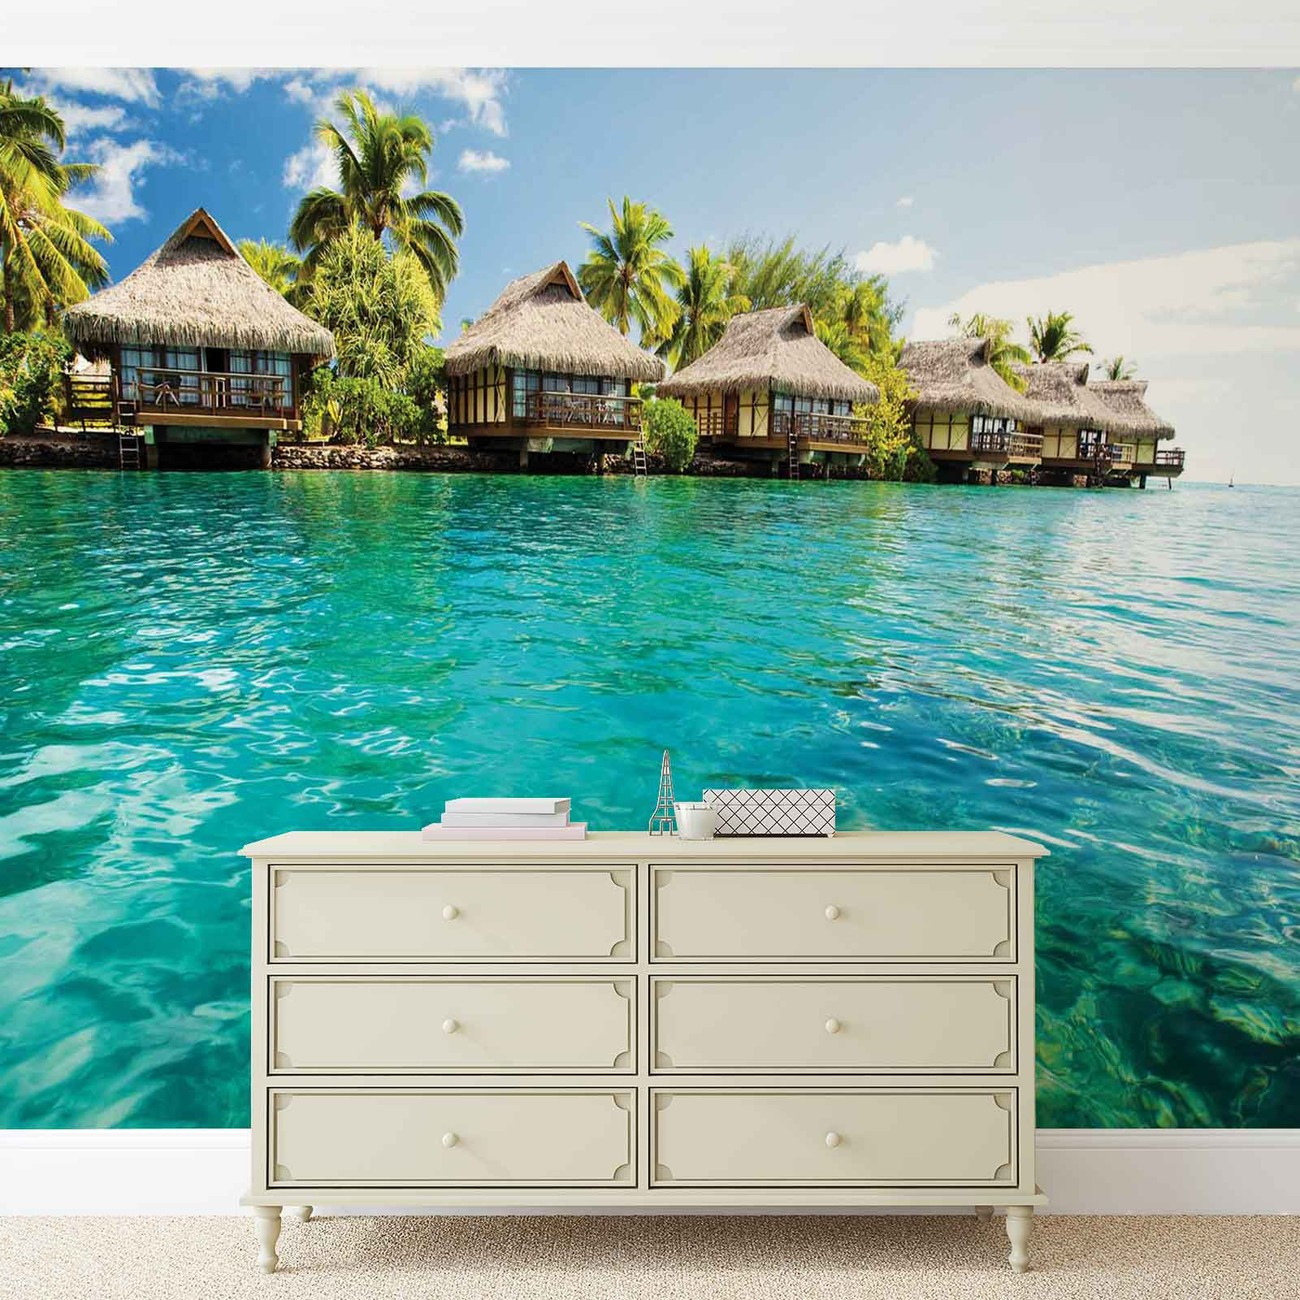 ile des cara bes mer tropicale chalets poster mural papier peint acheter le sur. Black Bedroom Furniture Sets. Home Design Ideas